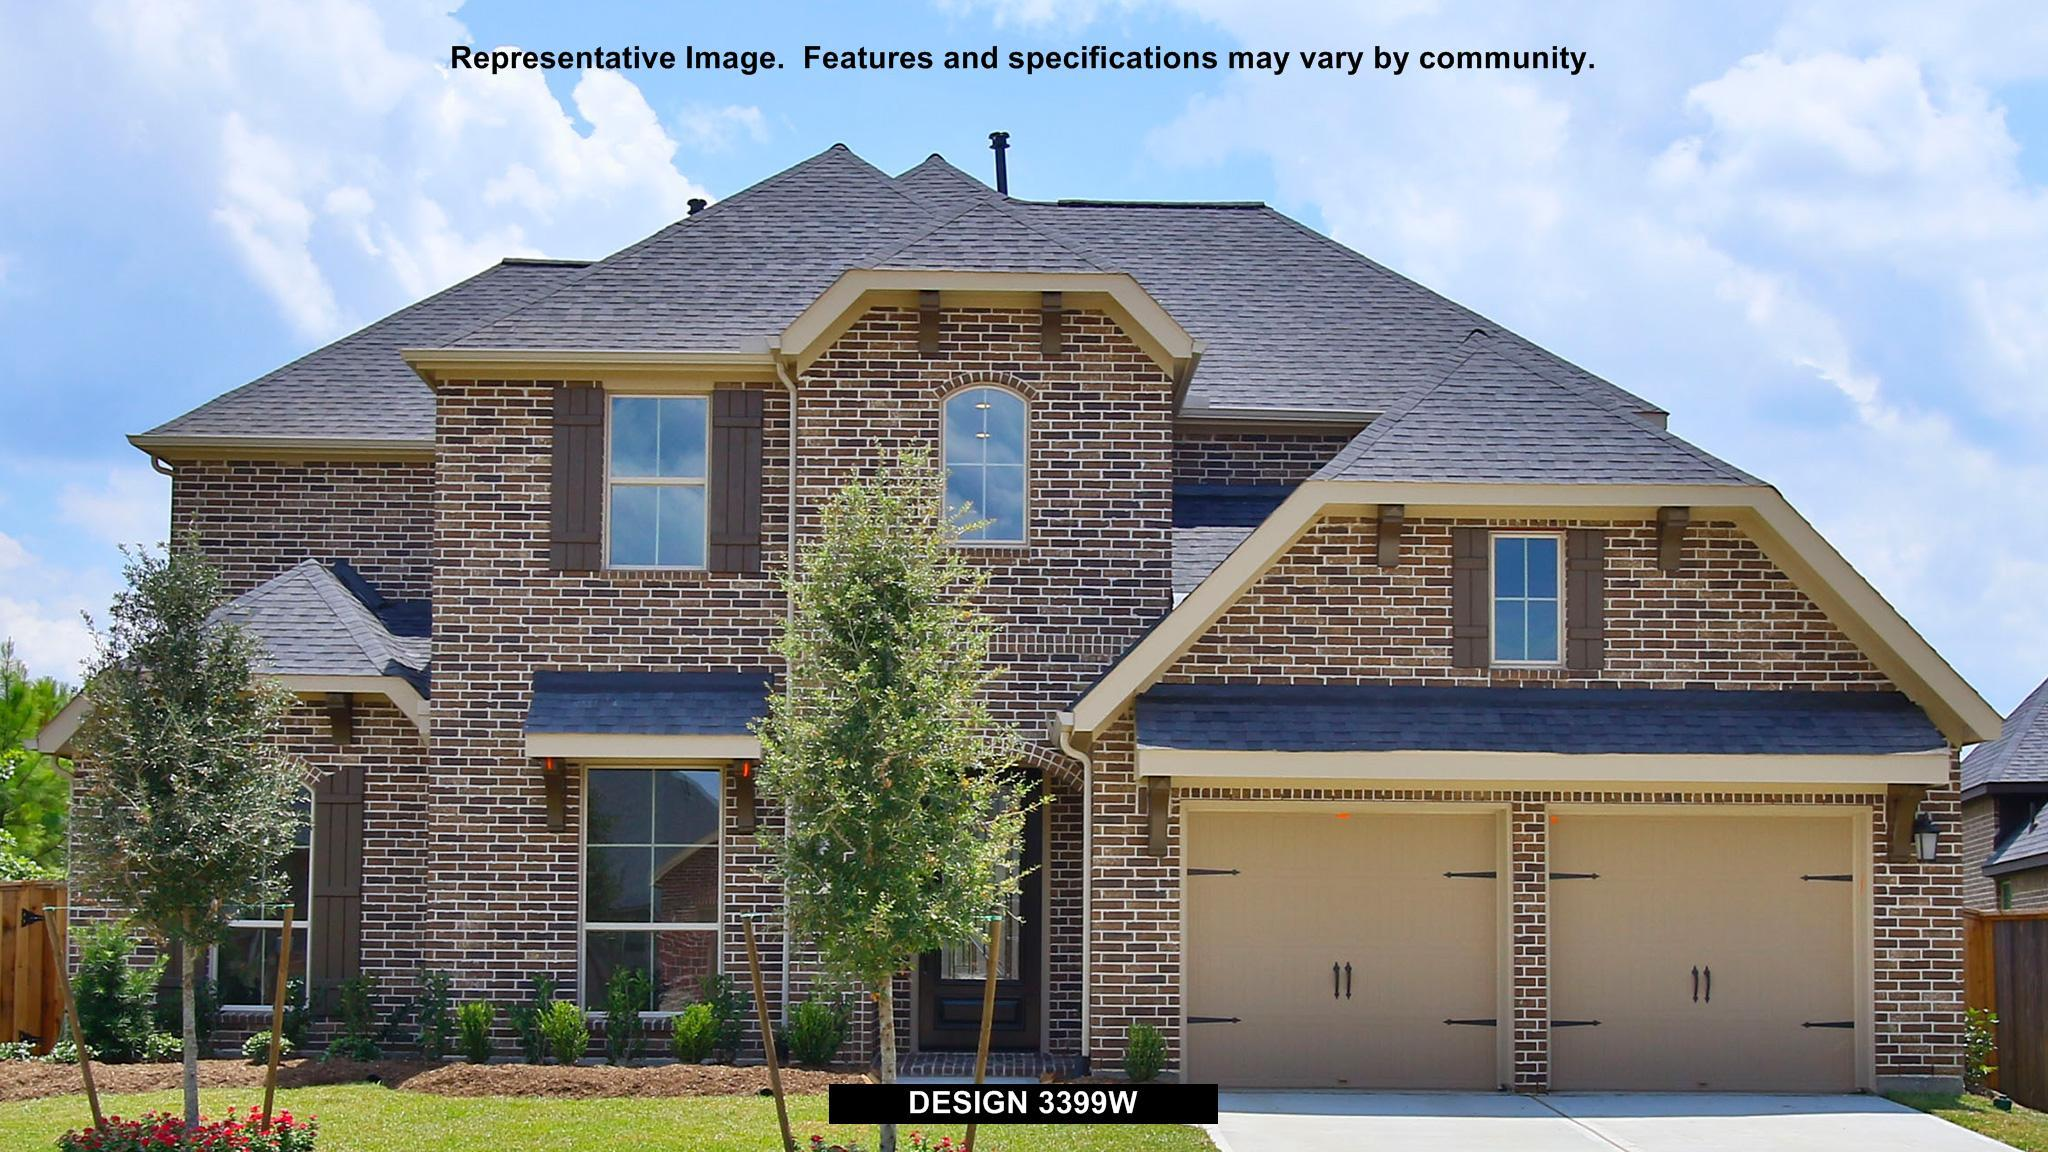 Single Family for Sale at Bryson 60' - 3399w 2117 Abelia Lane Leander, Texas 78641 United States